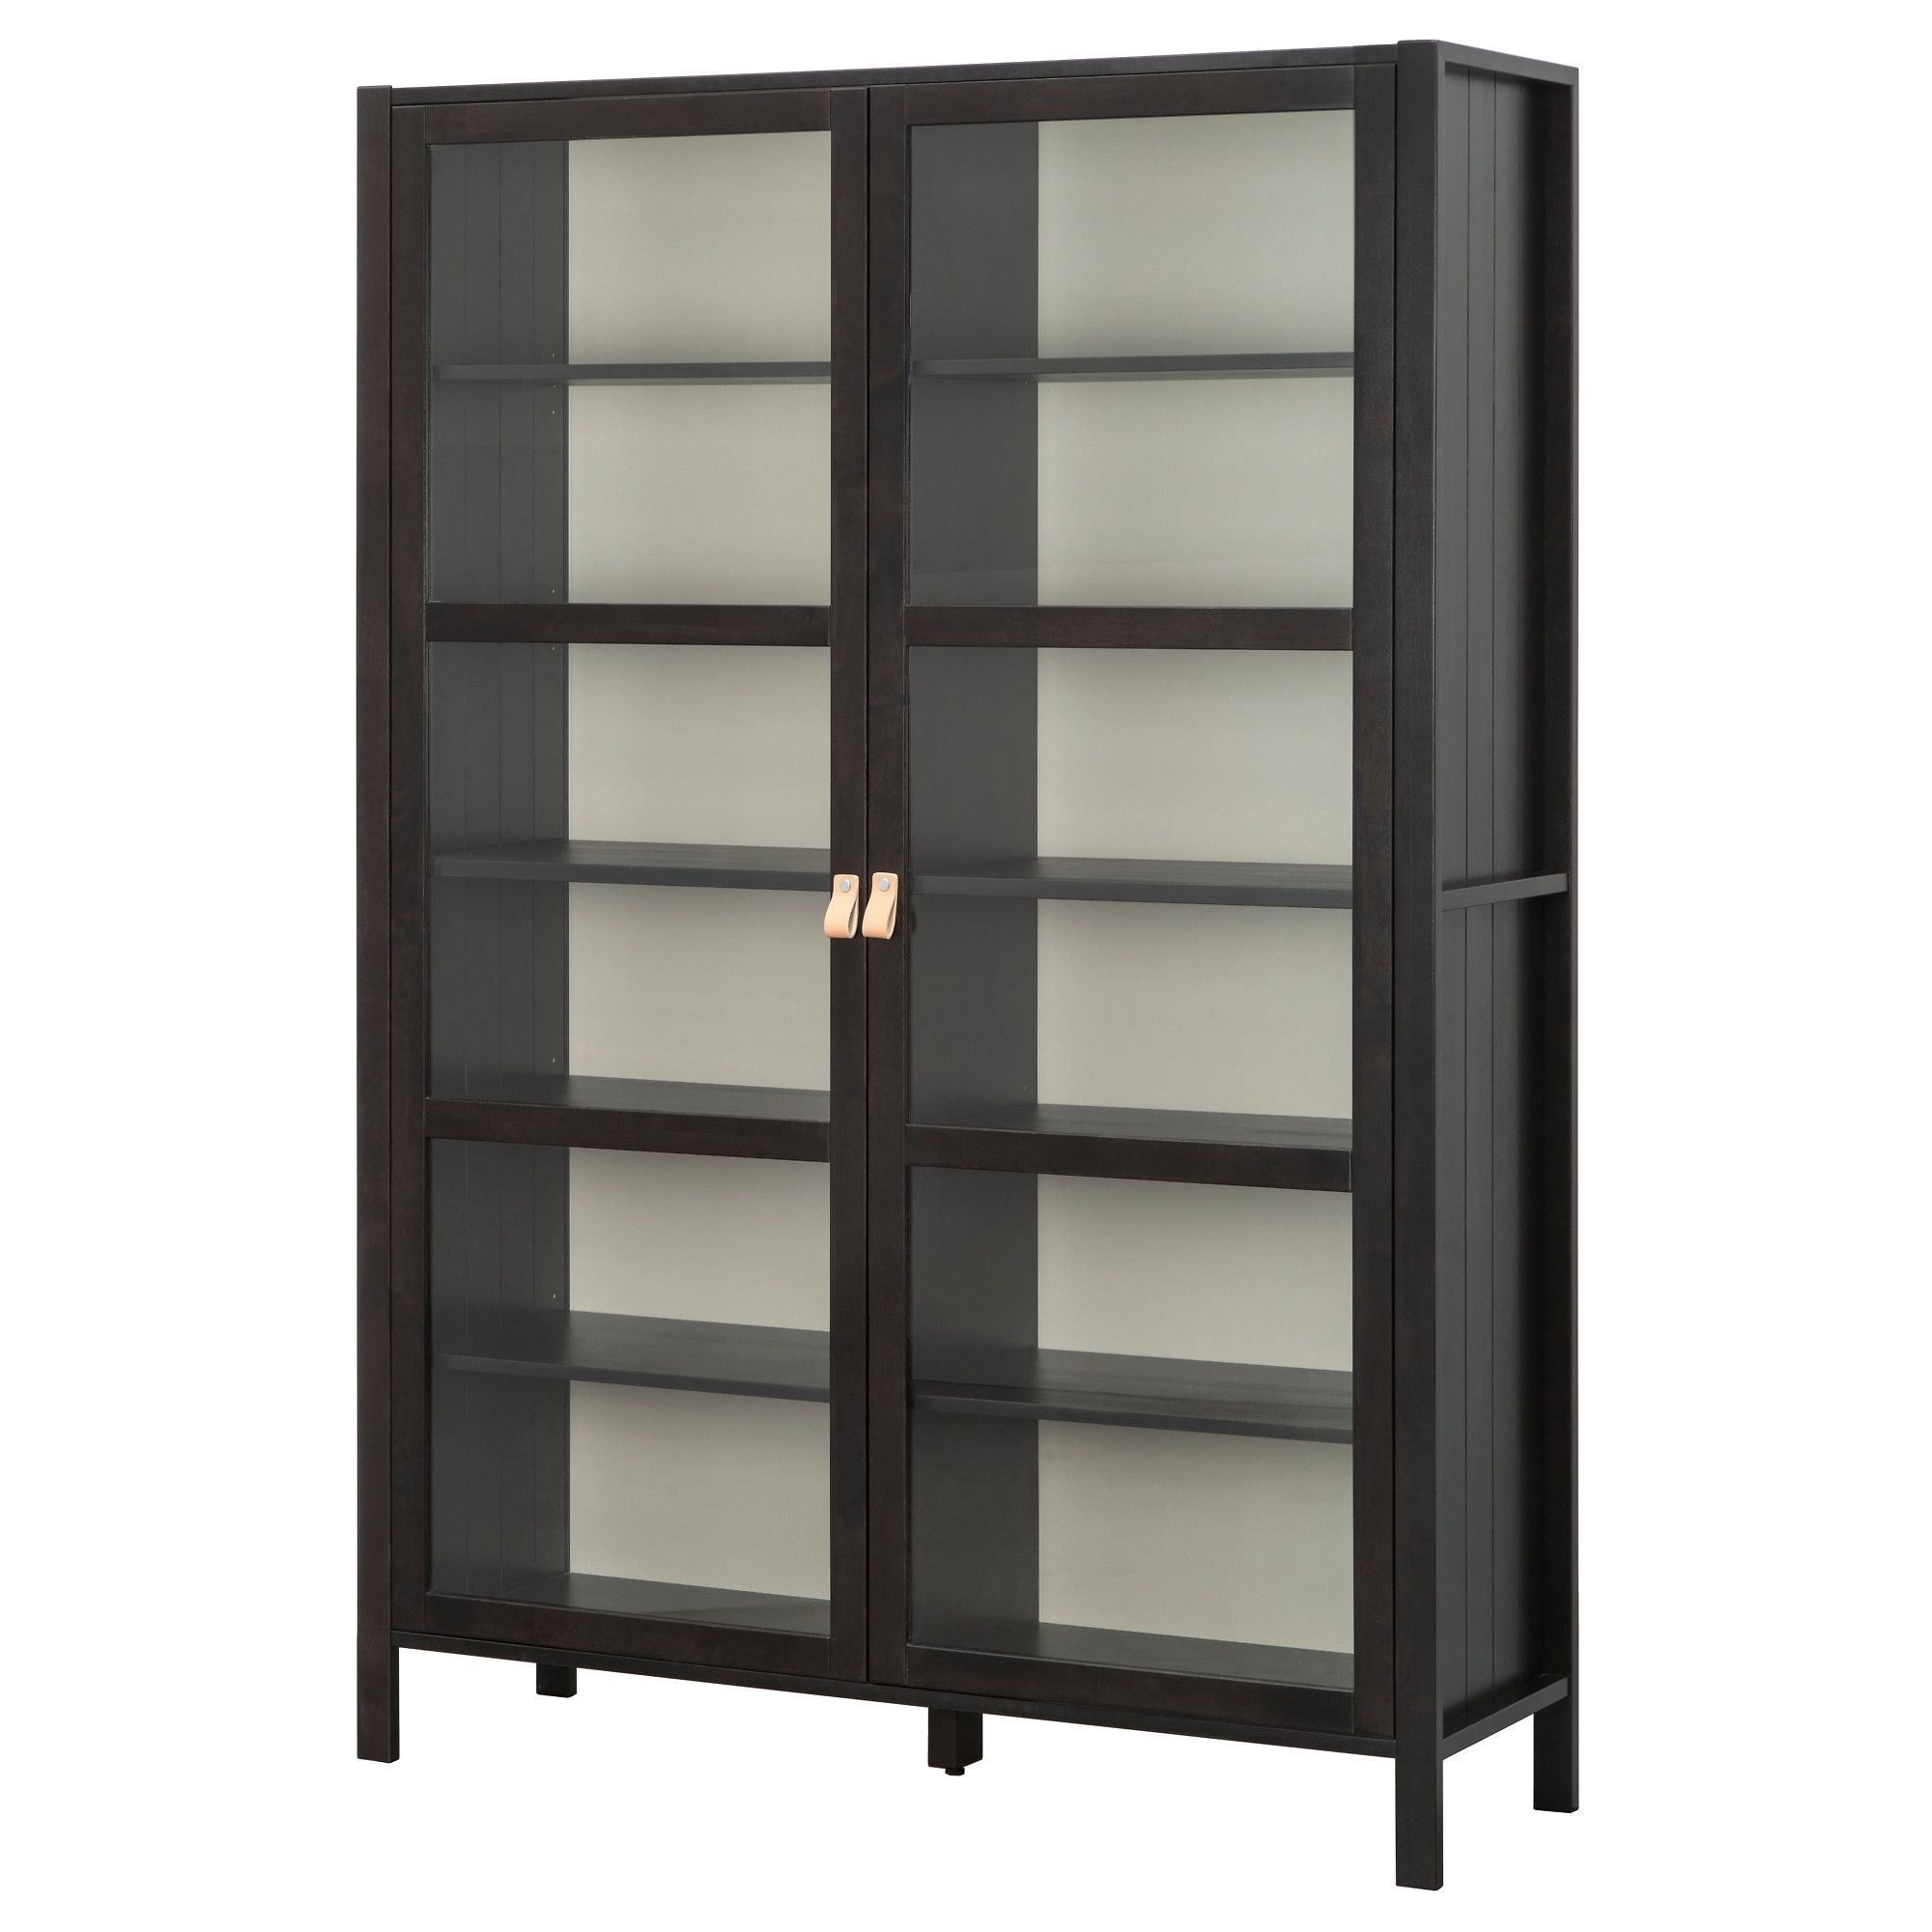 Ikea Bjrksns Glass Door Cabinet With 2 Doors Solid Wood Is A